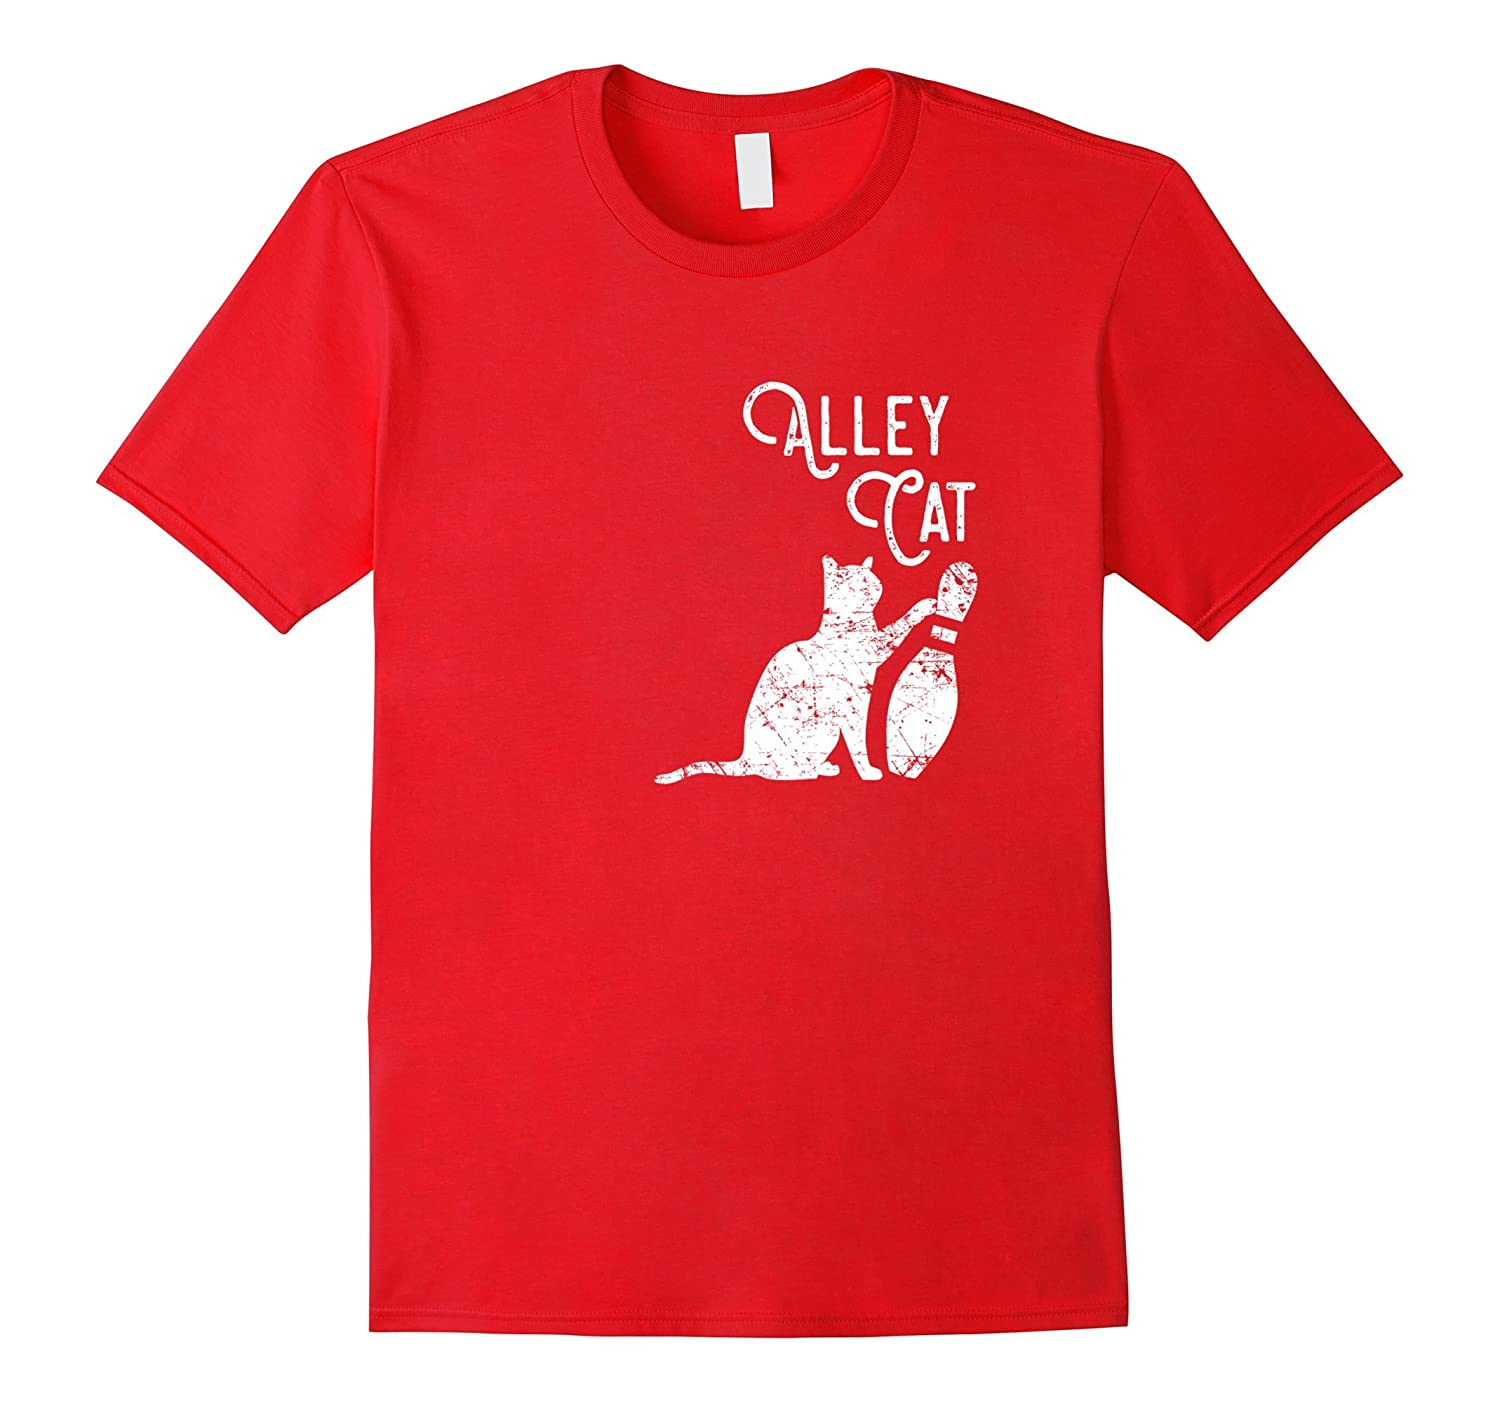 Ornery Alley Cat Tipping Bowling Pin Shirt Funny Team Gift-TH